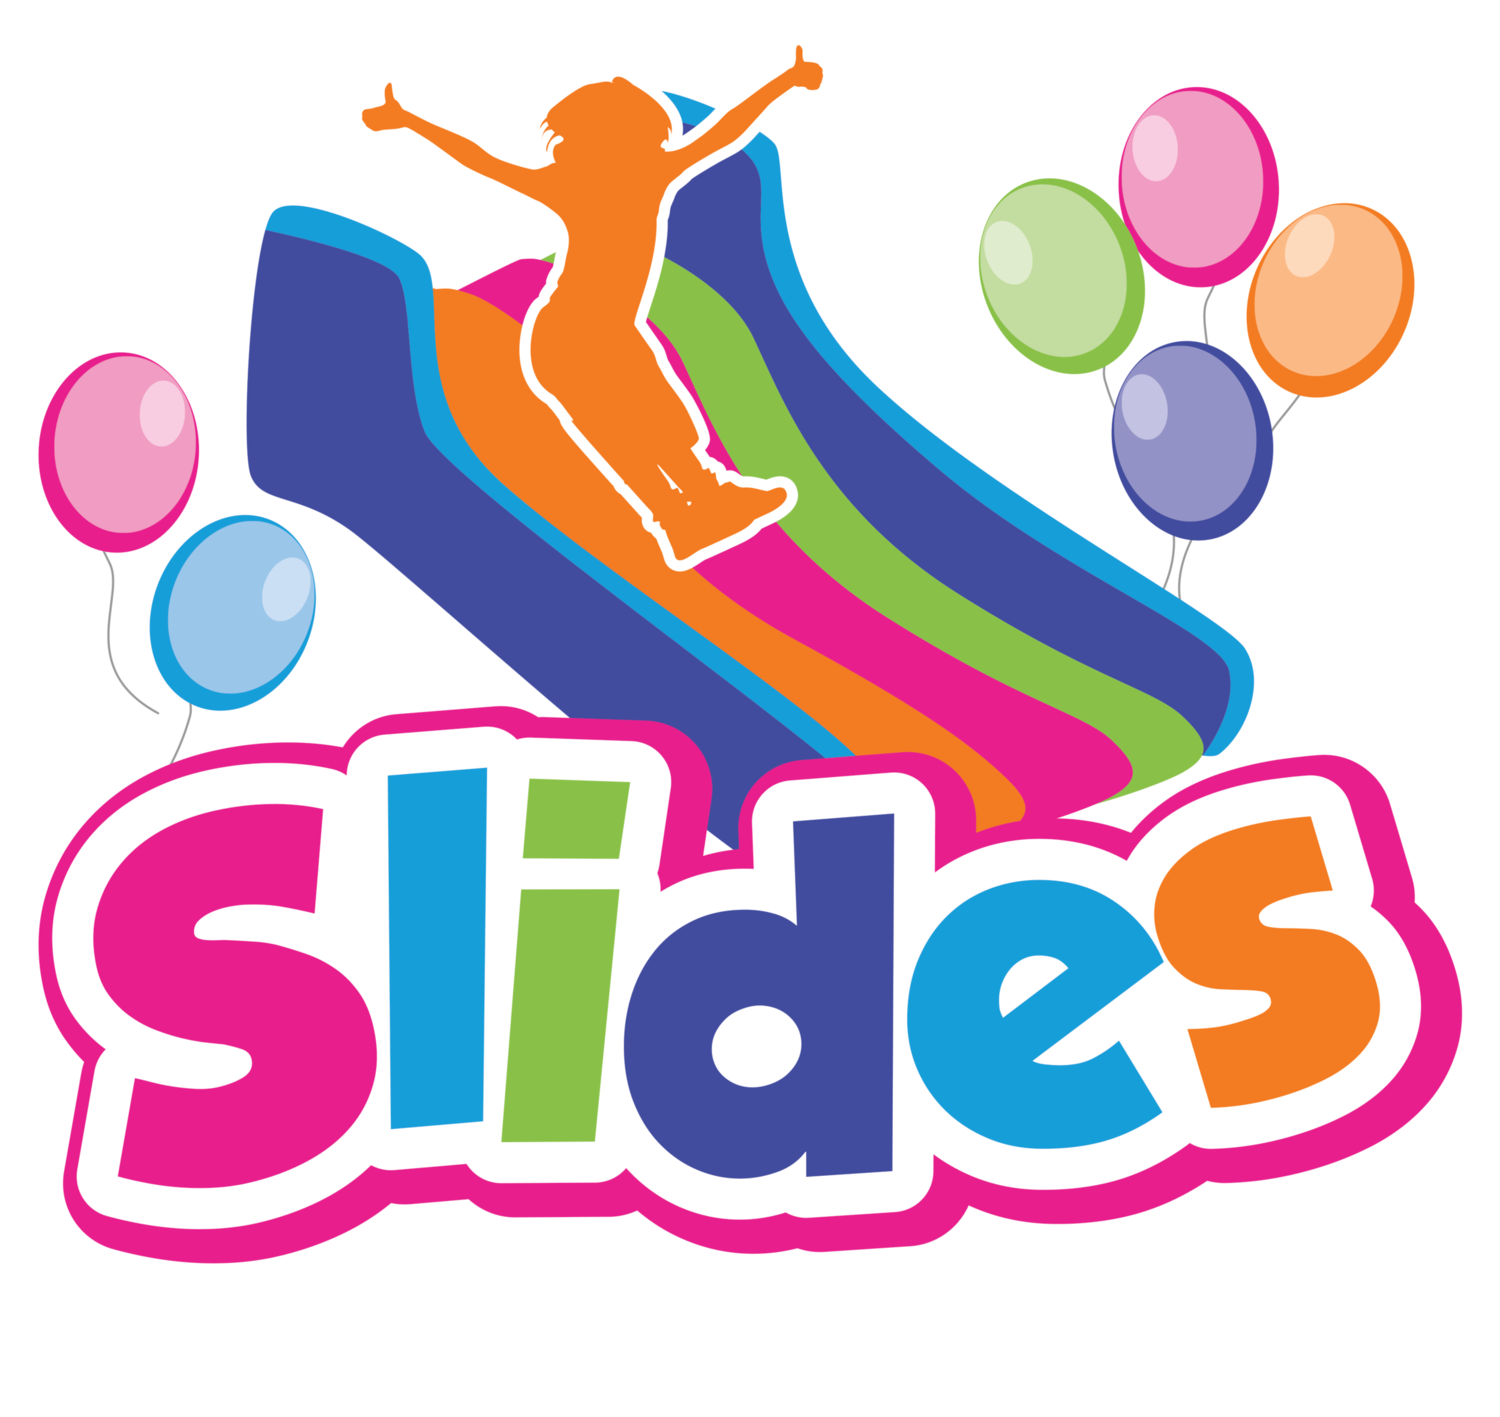 Slides Playcentre & Cafe - Knoxfield